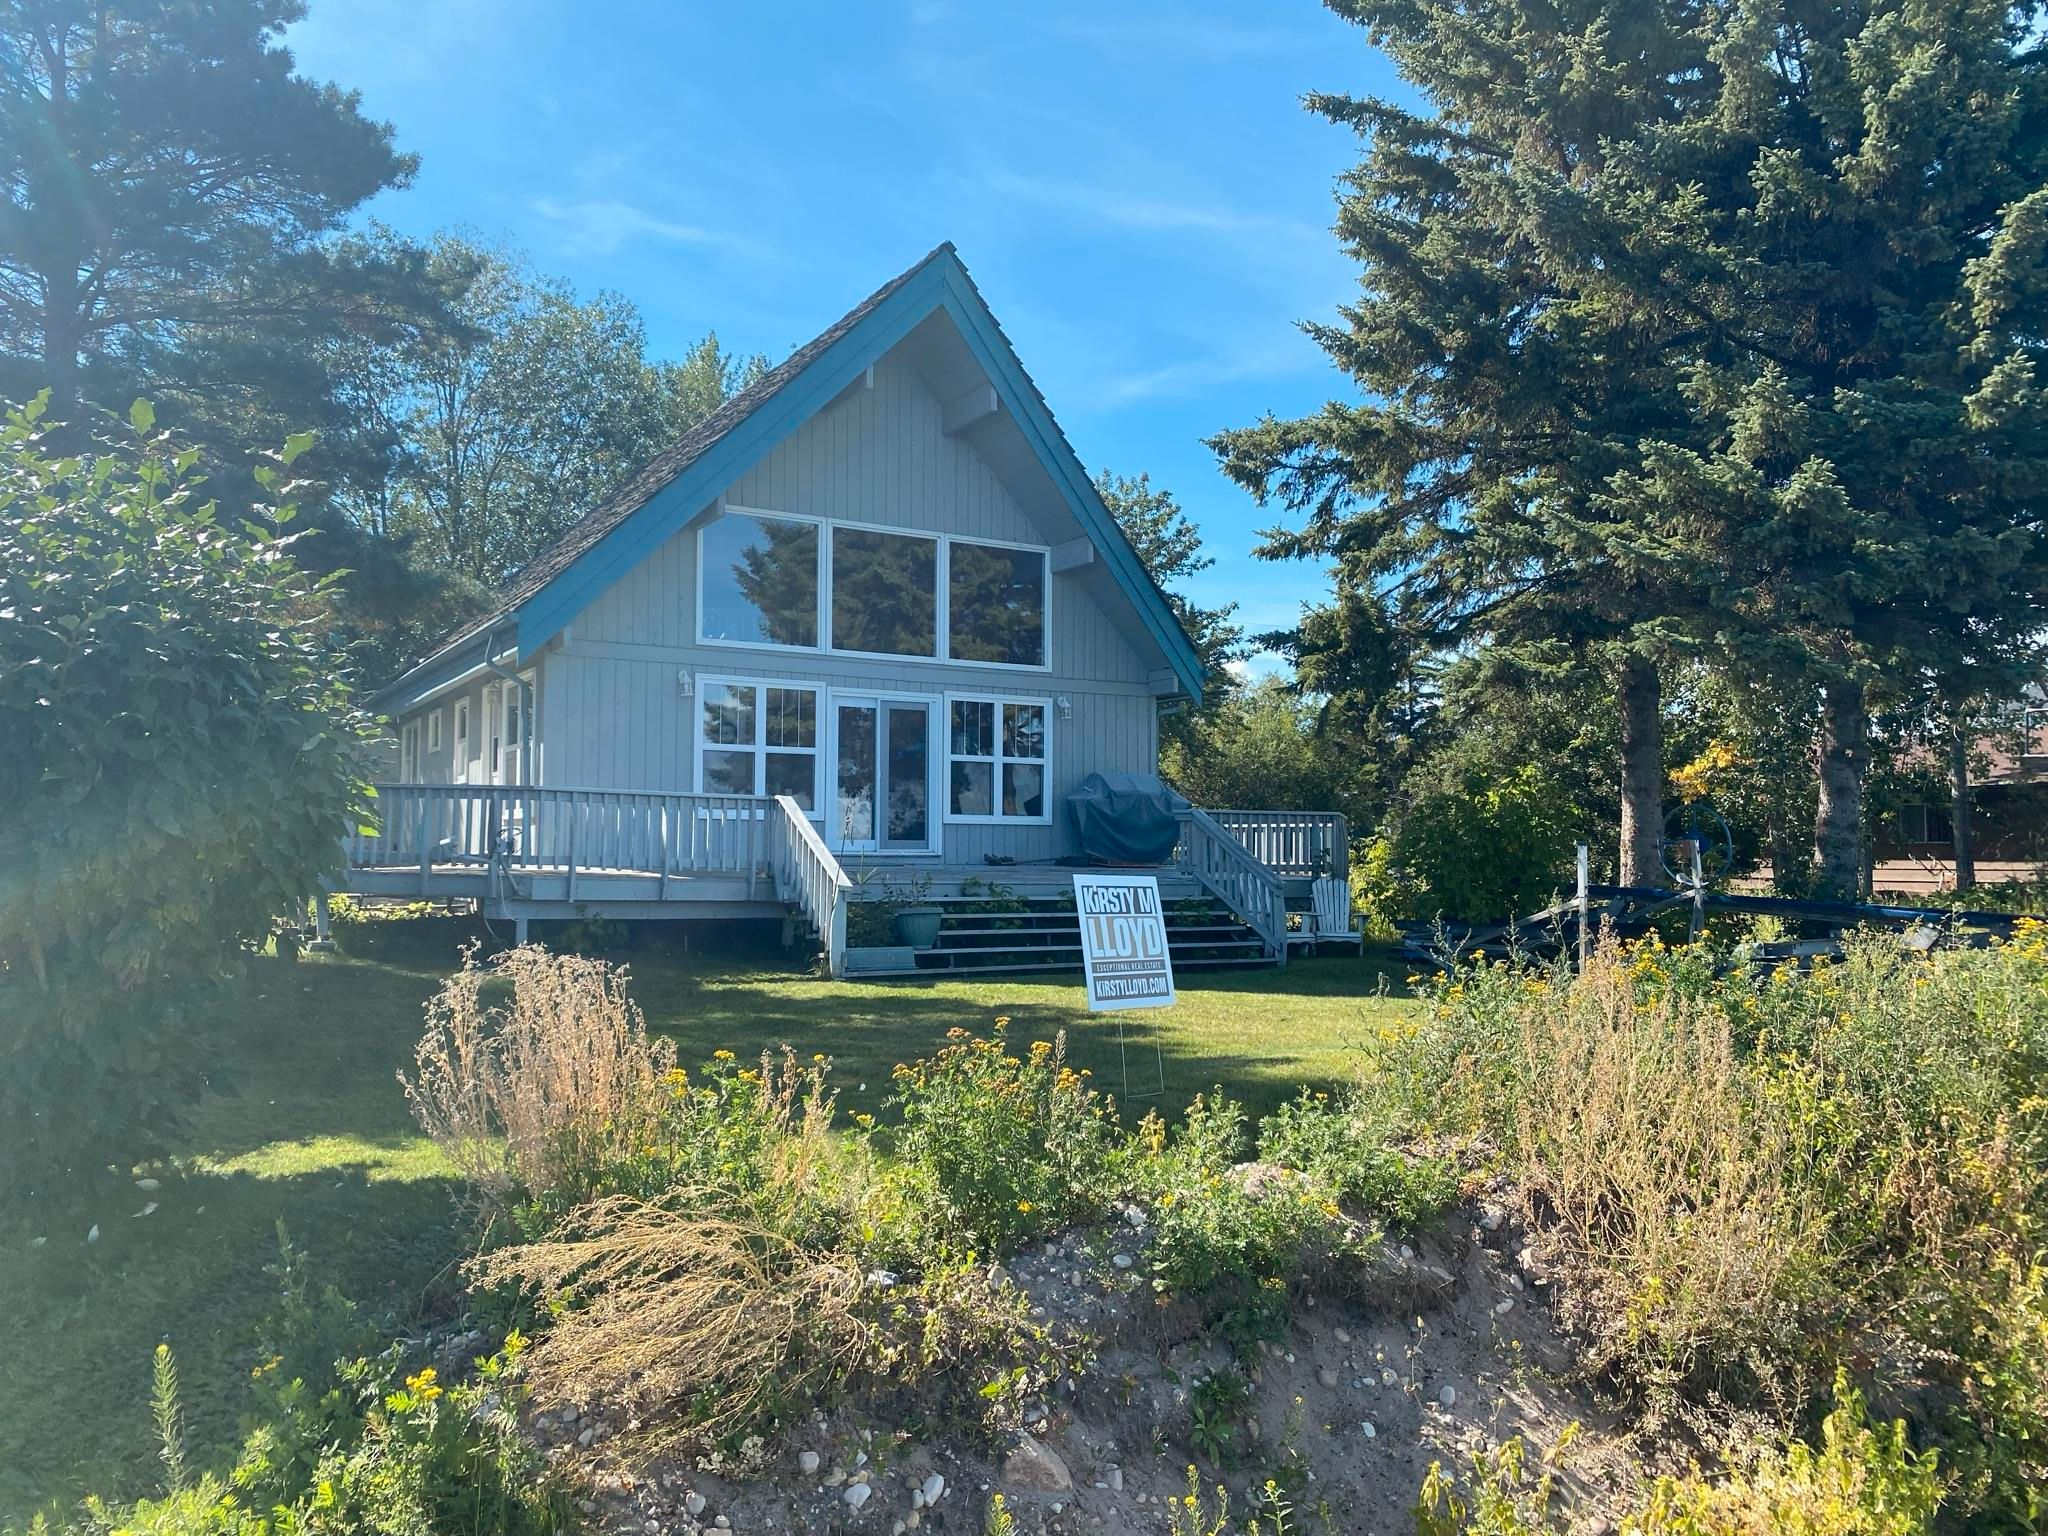 Main Photo: 330 CRYSTAL SPRINGS Close: Rural Wetaskiwin County House for sale : MLS®# E4260907